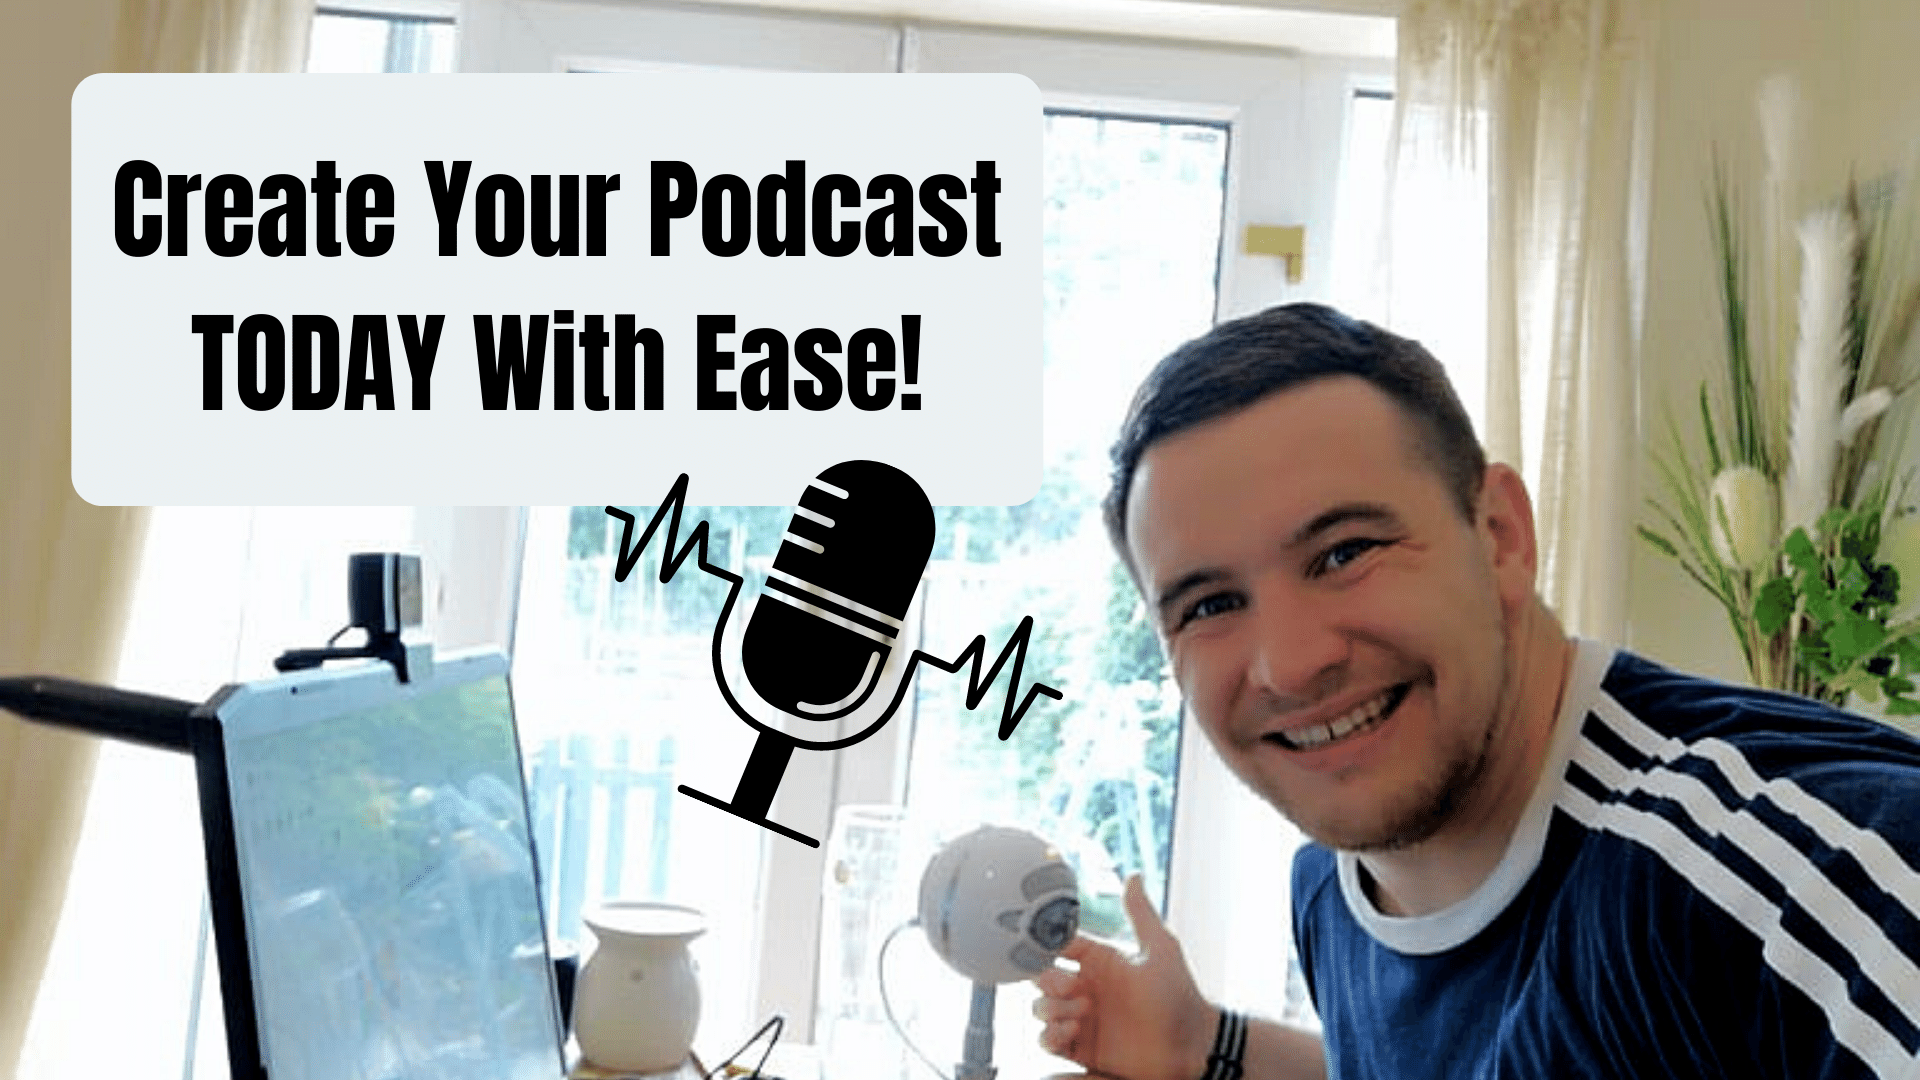 How To Make Your First Podcast Episode Fast And Easy!